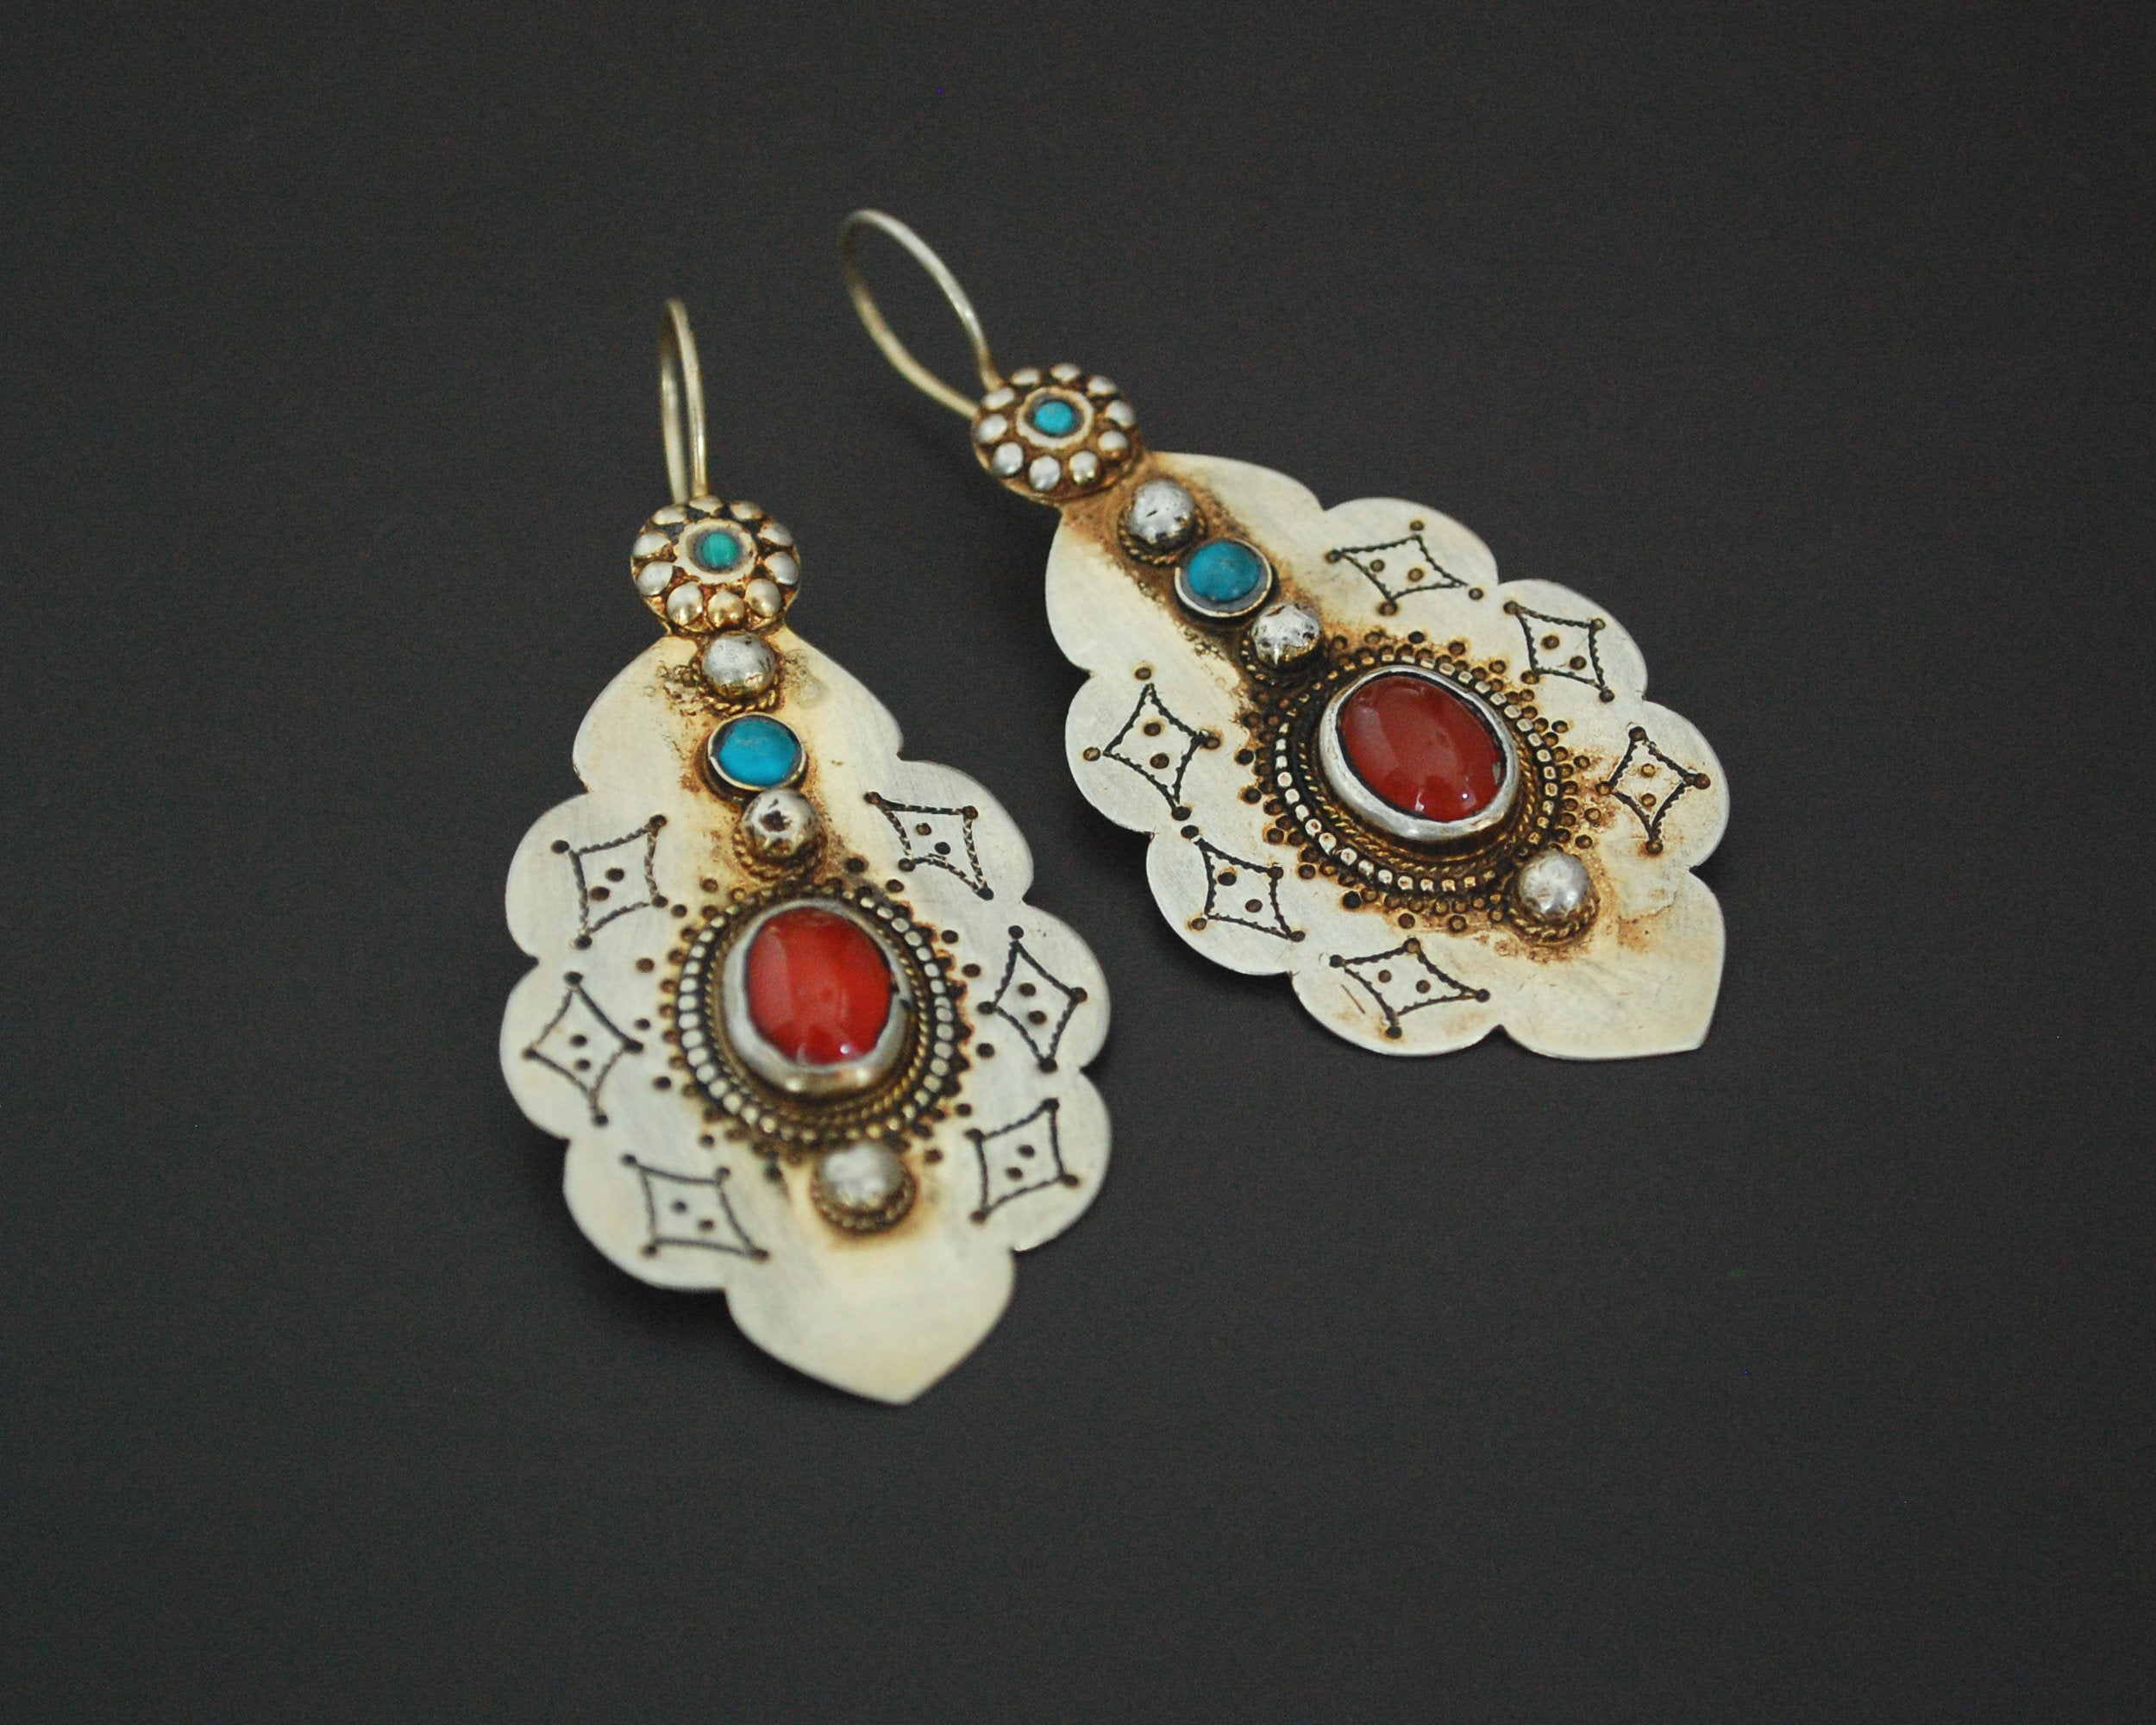 Turkmen Gilded Earrings with Carnelian and Turquoise